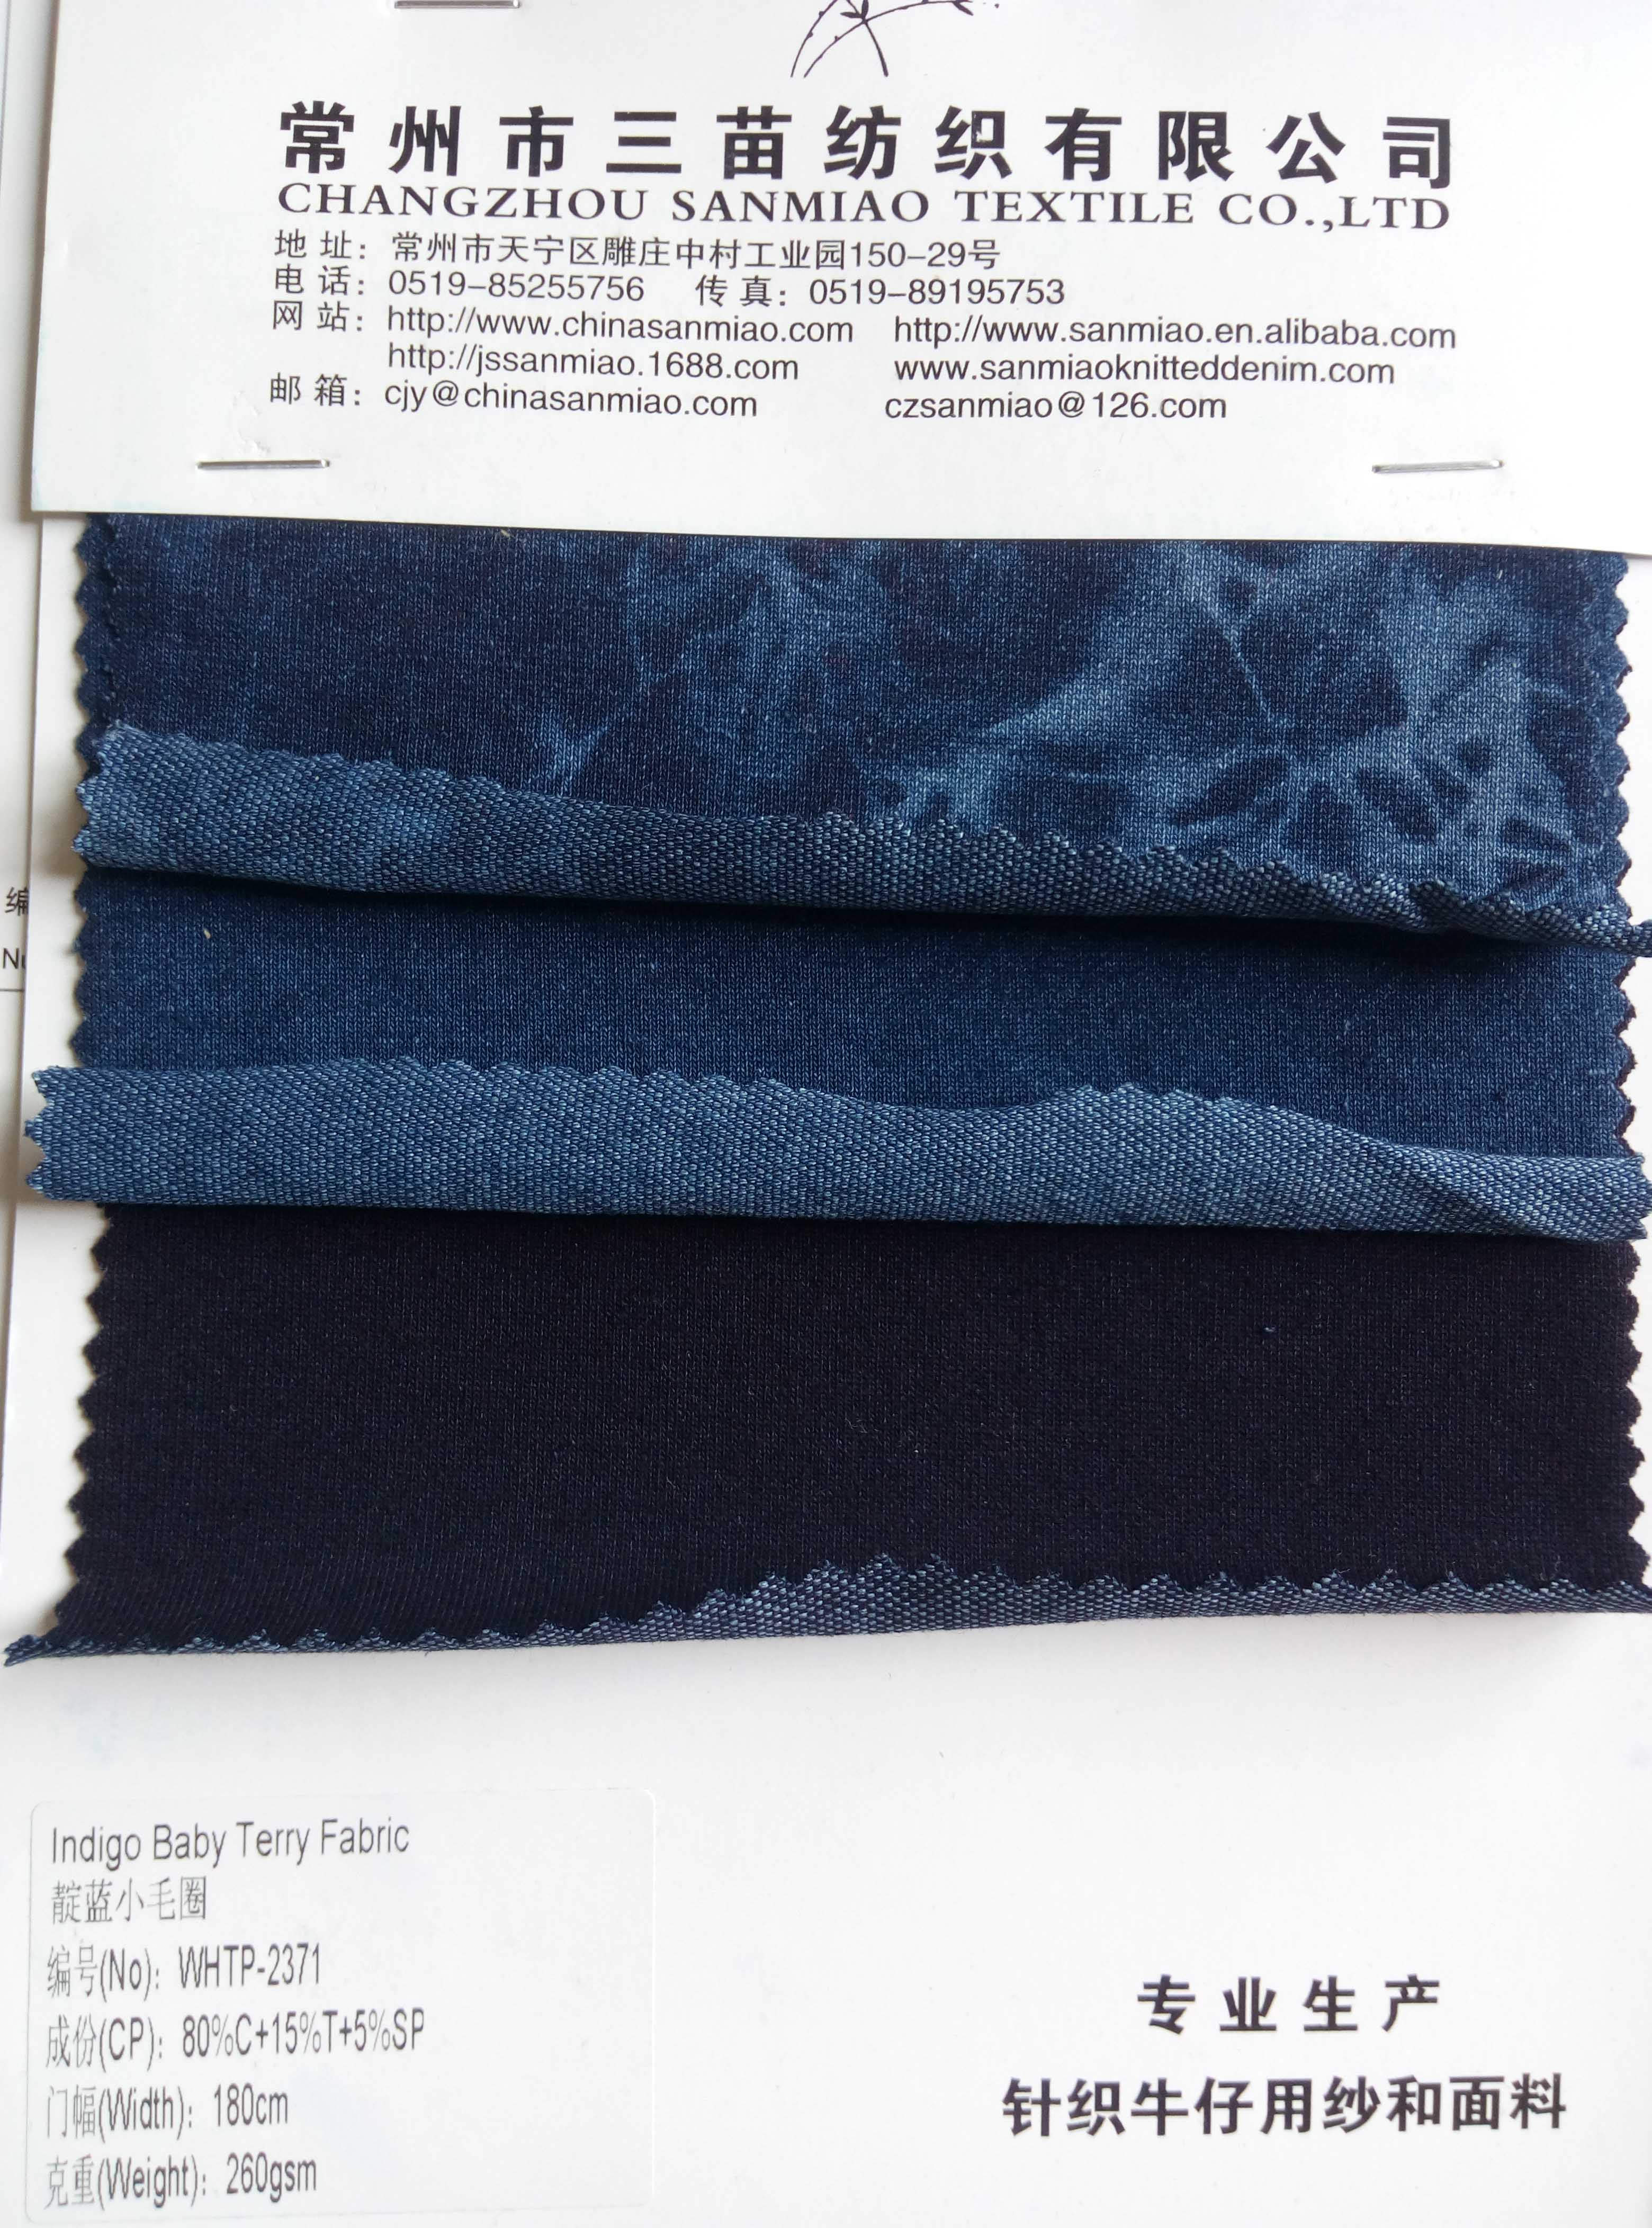 260g Polyester stretch indigo knit terry fabric